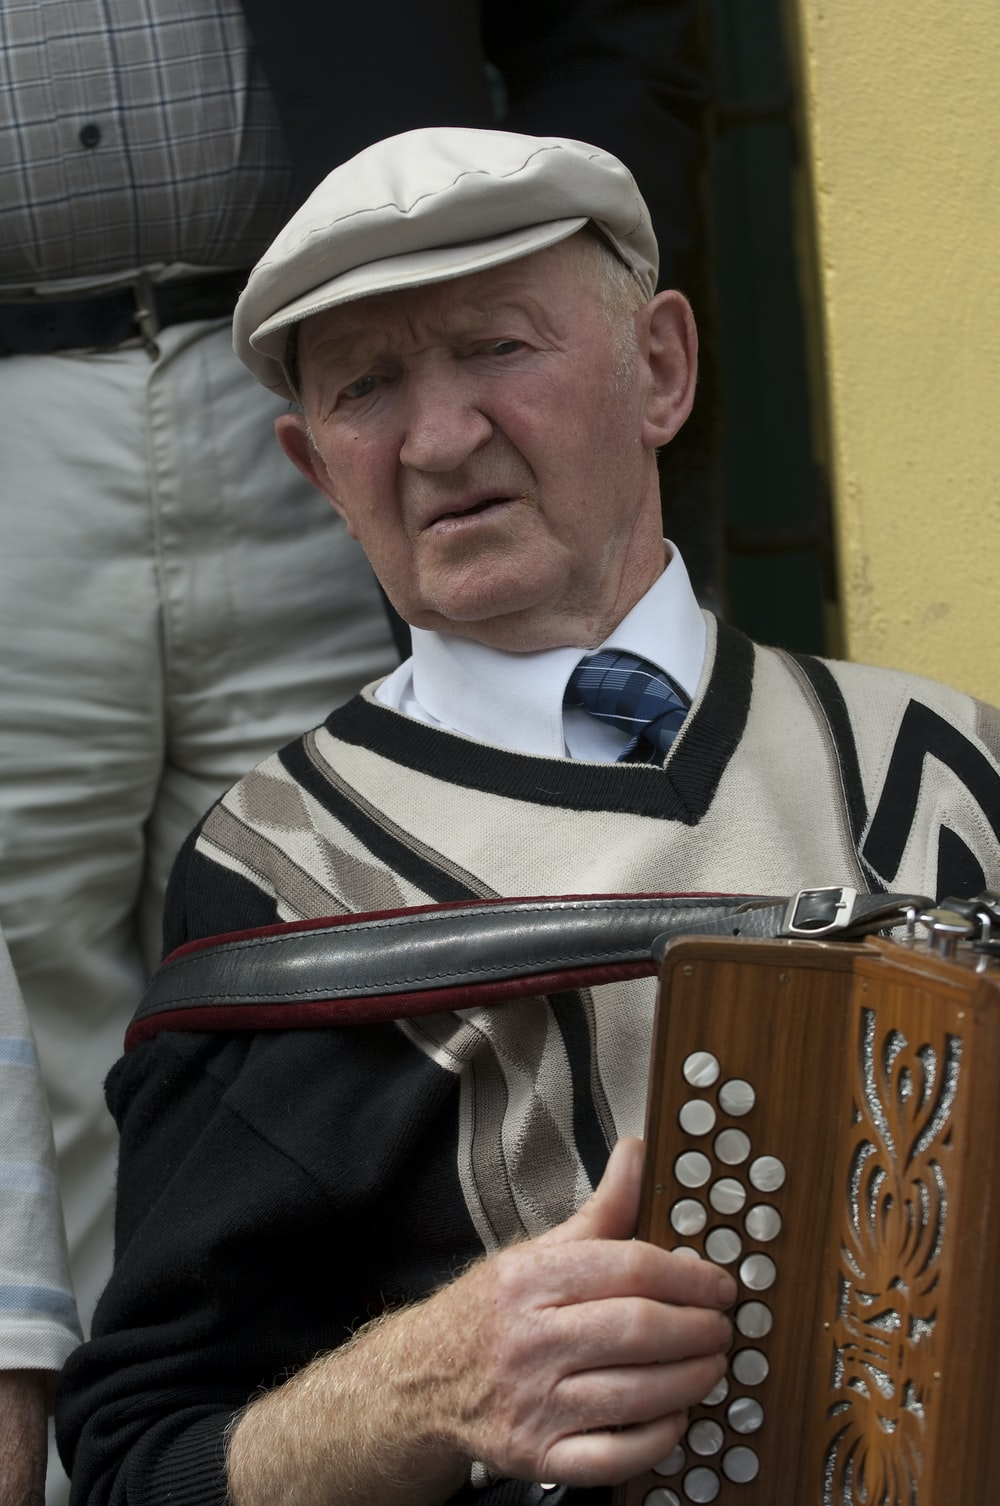 man in black and white striped shirt playing red and black musical instrument